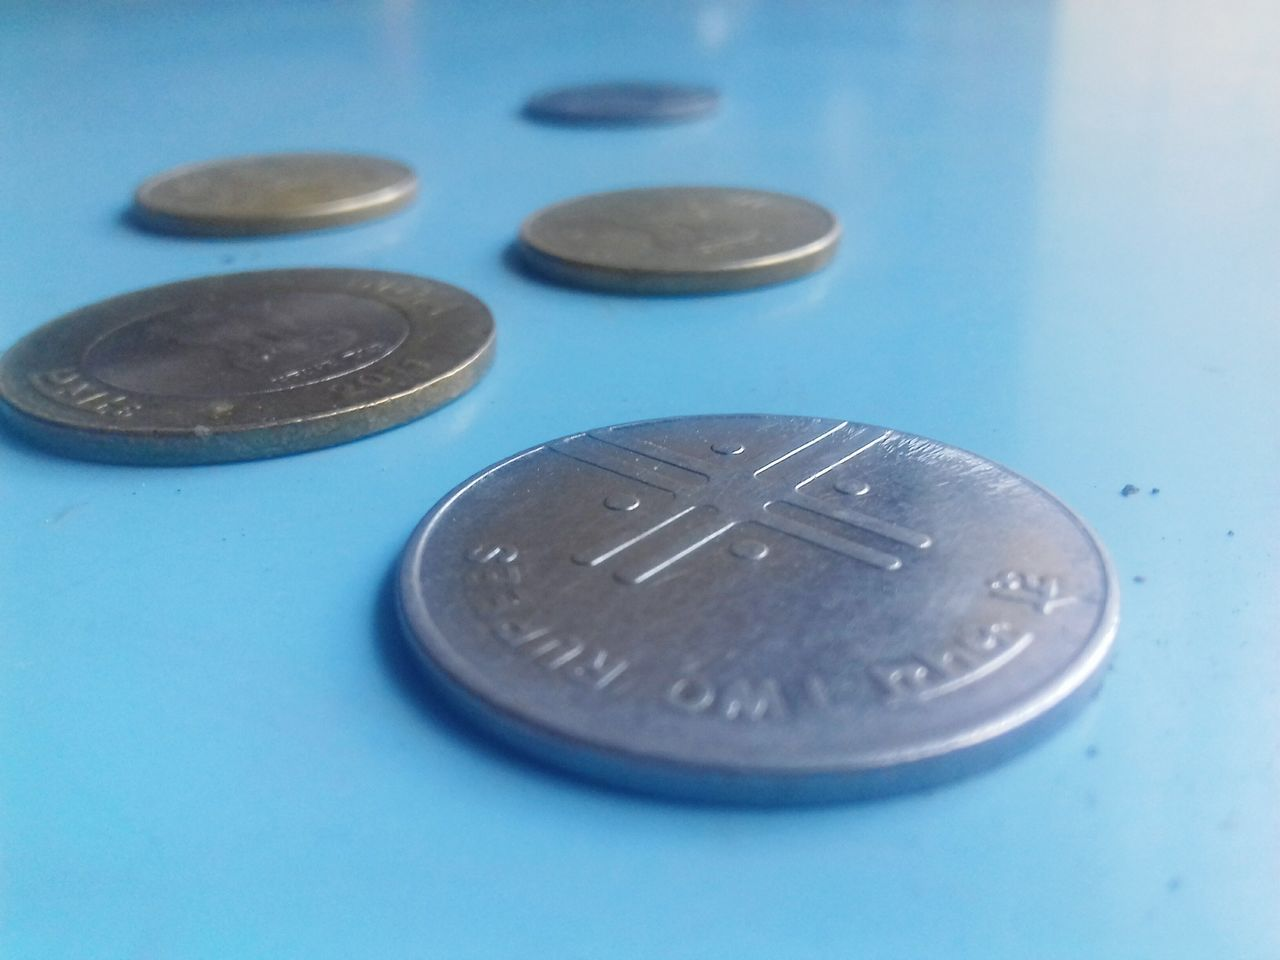 coin, currency, finance, no people, blue, close-up, table, savings, indoors, day